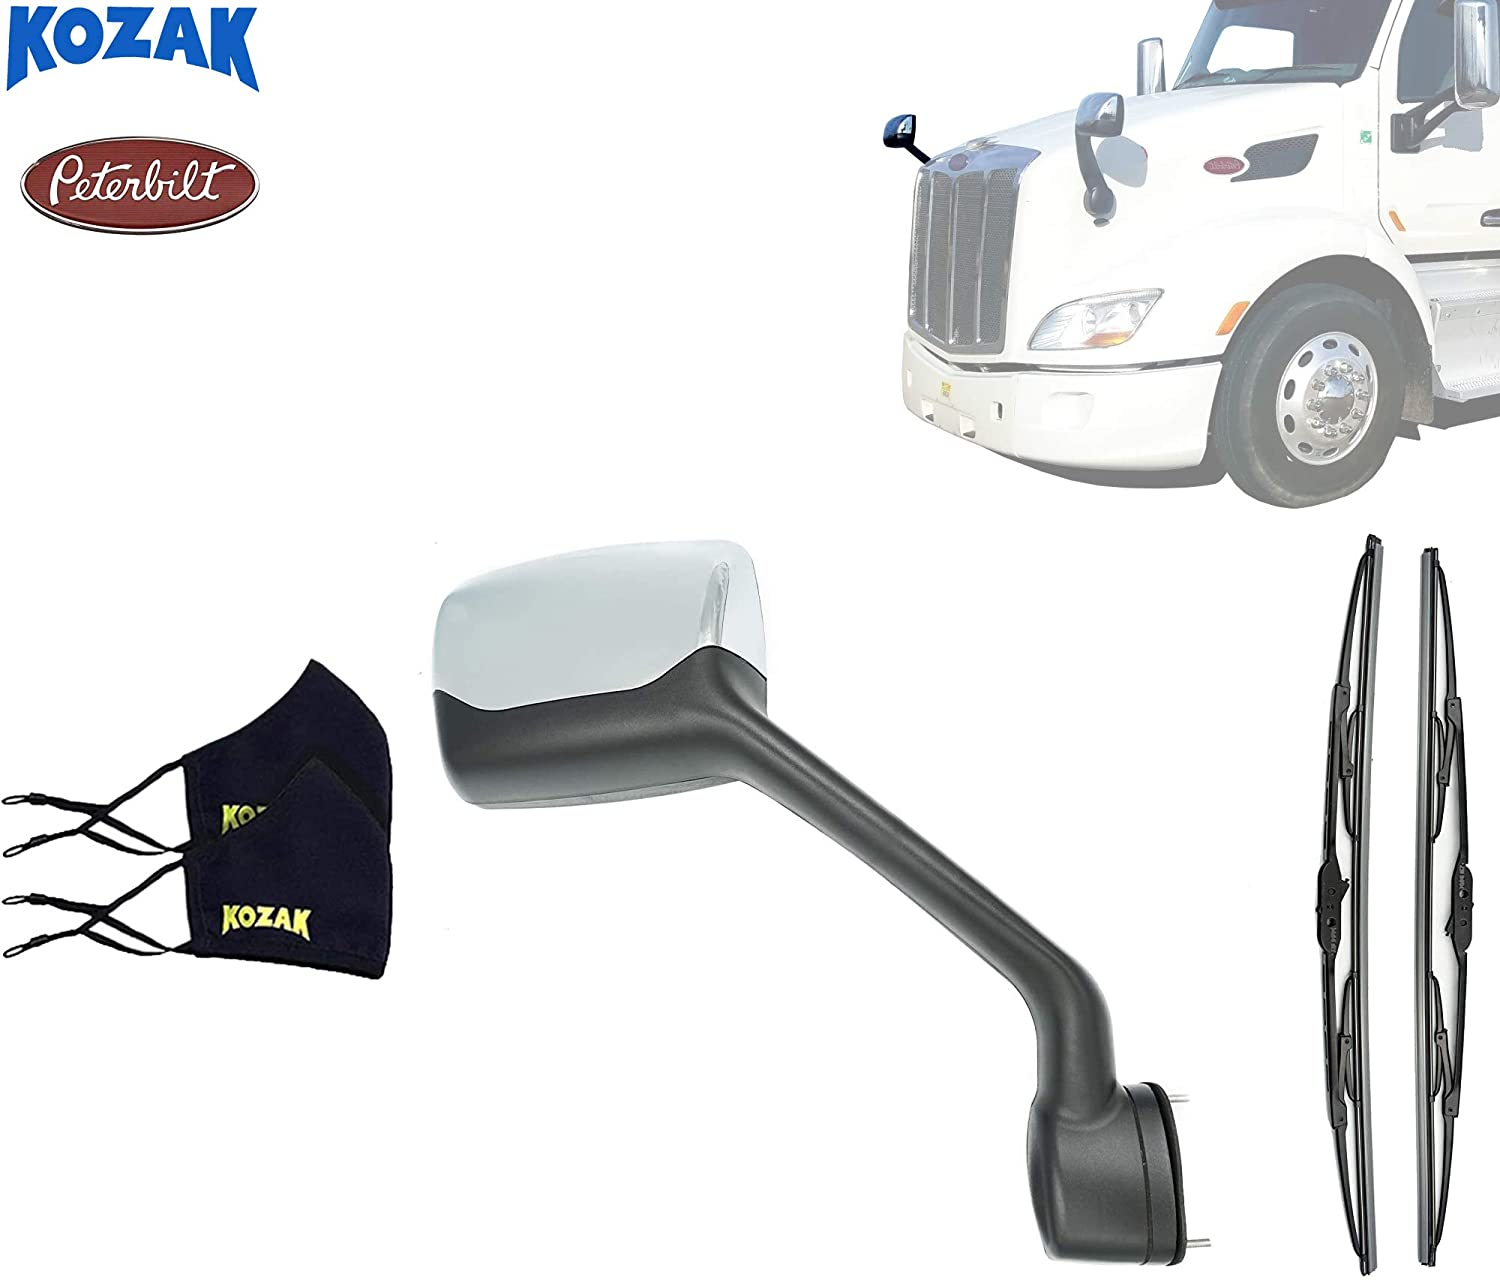 Kozak Chrome Hood Mirror Aftermarket Replacement Right for Freightliner Cascadia 2018 Semi Trucks PLUS Windshield Wipers and Freightliner Emblem Passenger Side